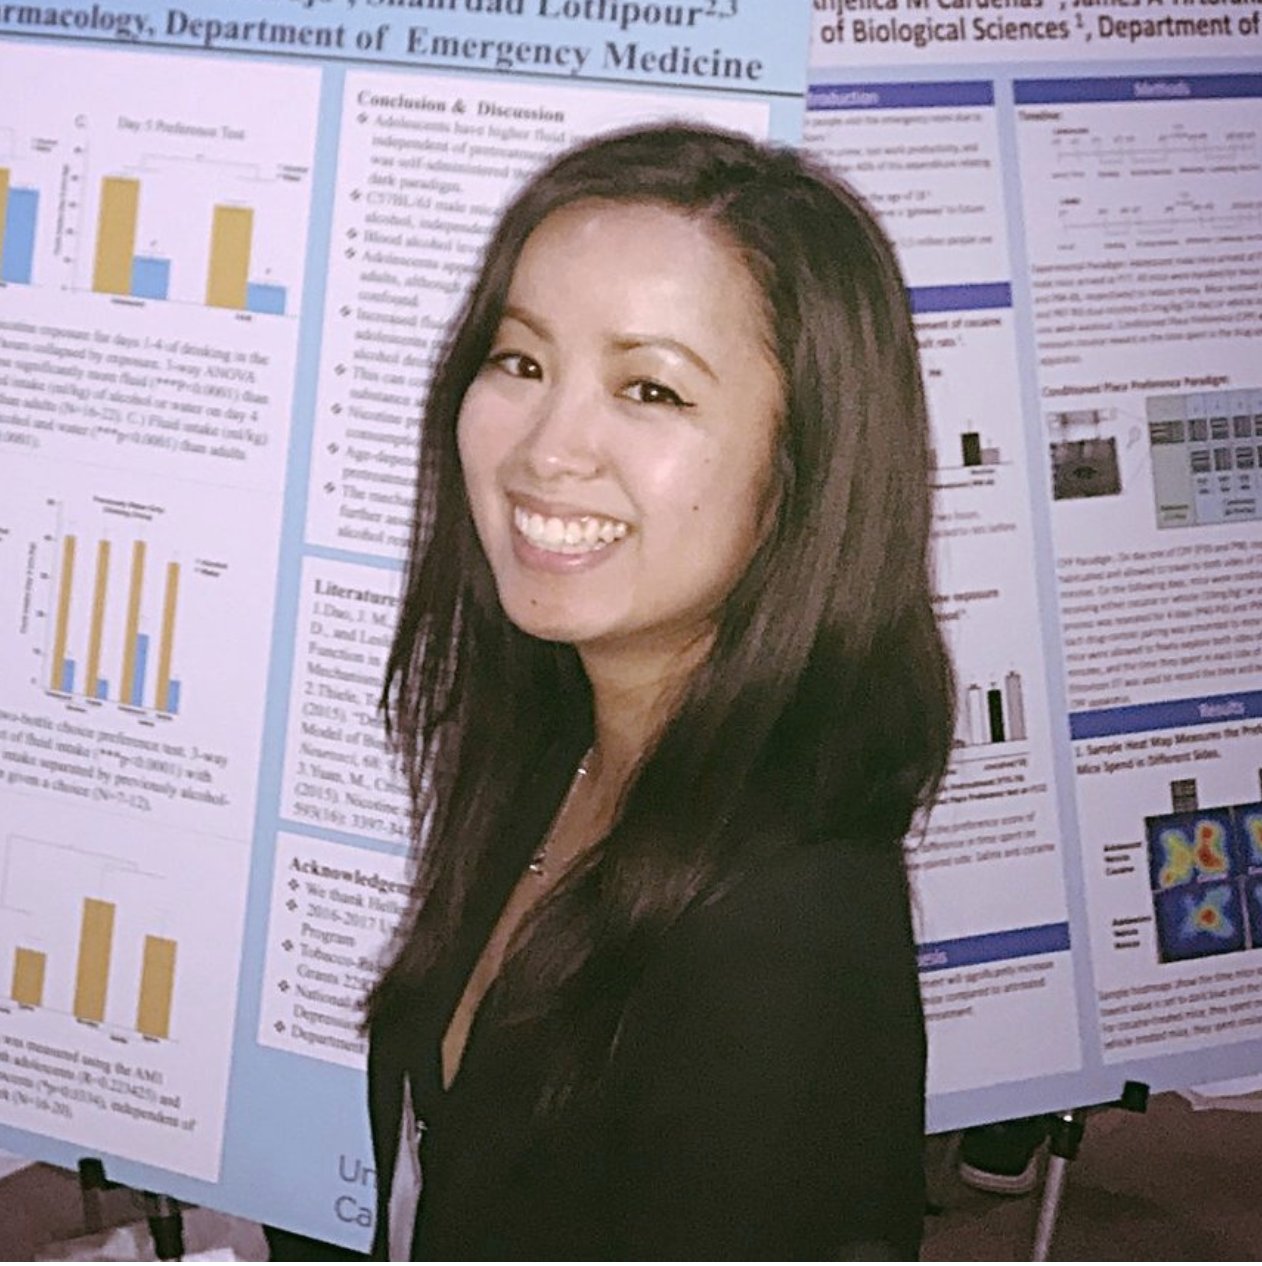 Sally Liu, UCI Campus-wide Honors Program Student and Laboratory Alumnus